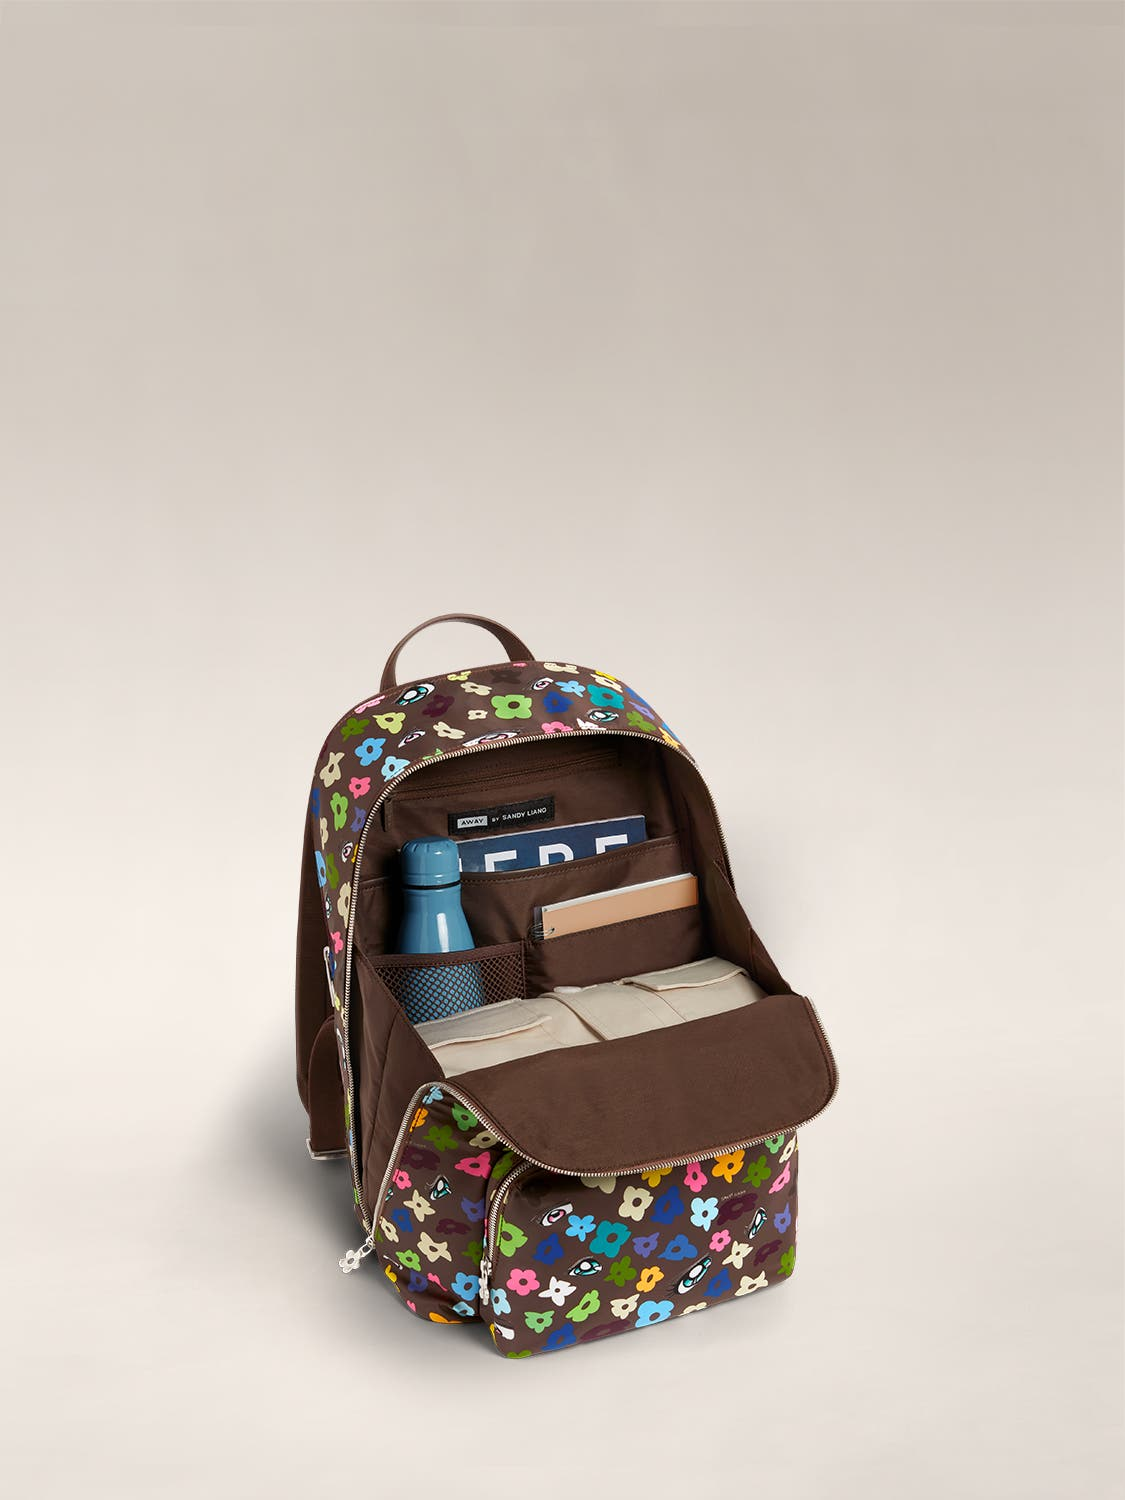 The Front Pocket Backpack by Sandy Liang in brown floral pattern, open and packed with items such as a water hottle and wallet.